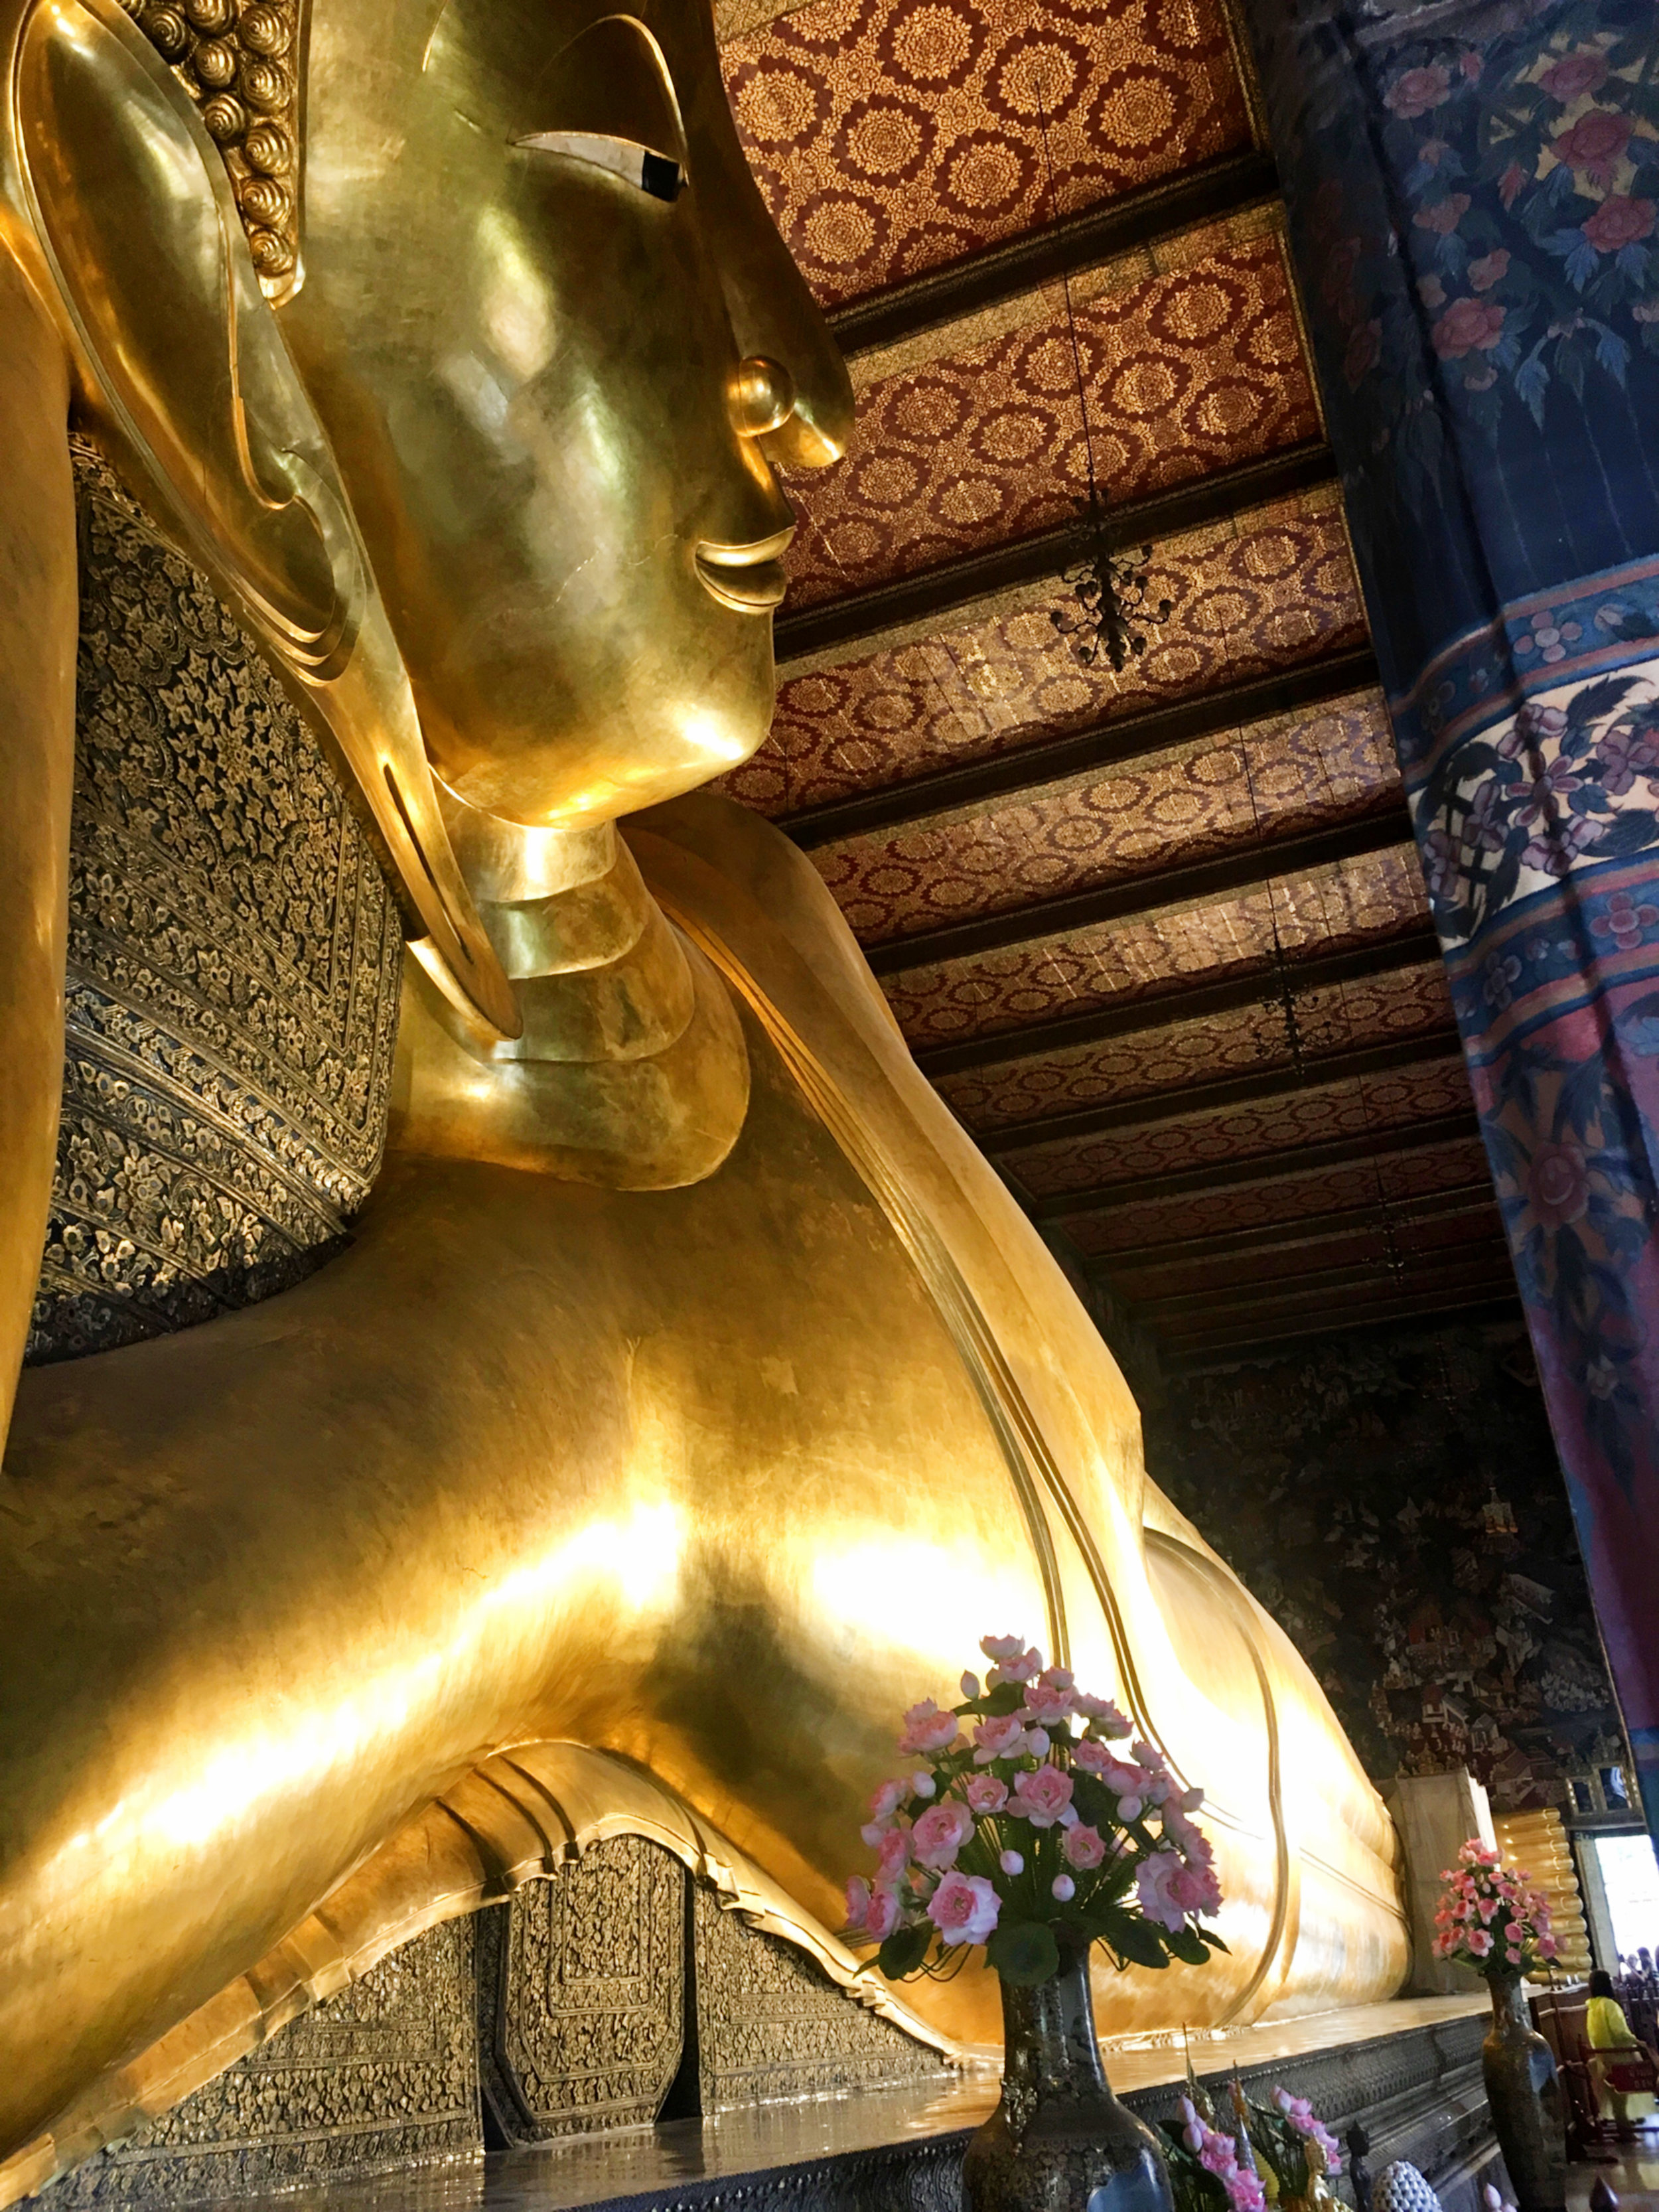 Side view of large reclining Buddha in Bangkok